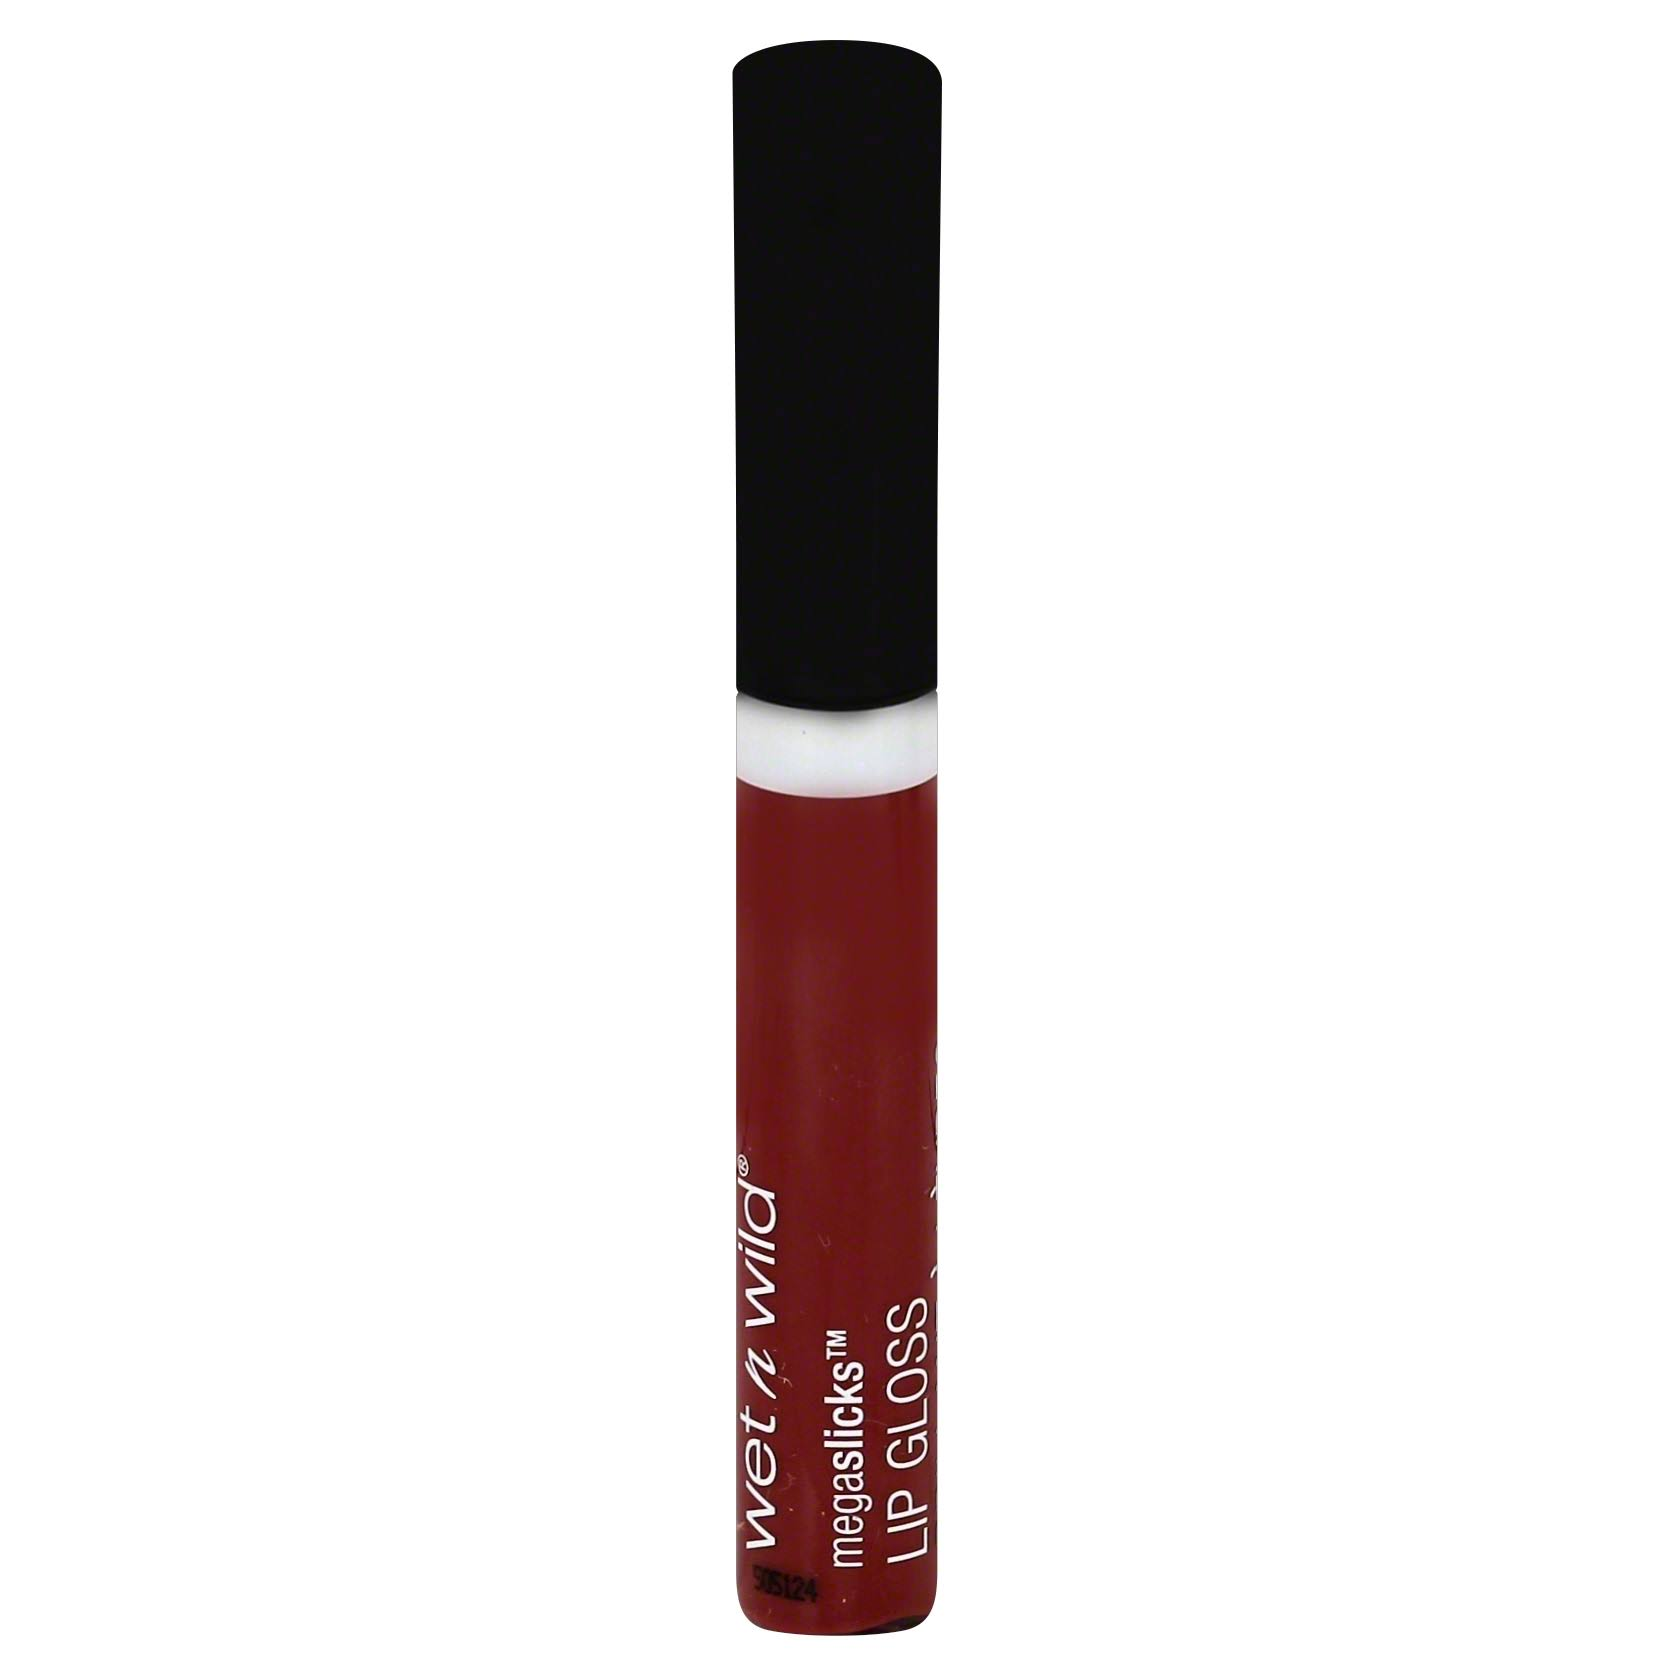 Wet N Wild Megaslicks Lip Gloss - 550 Wined And Dined